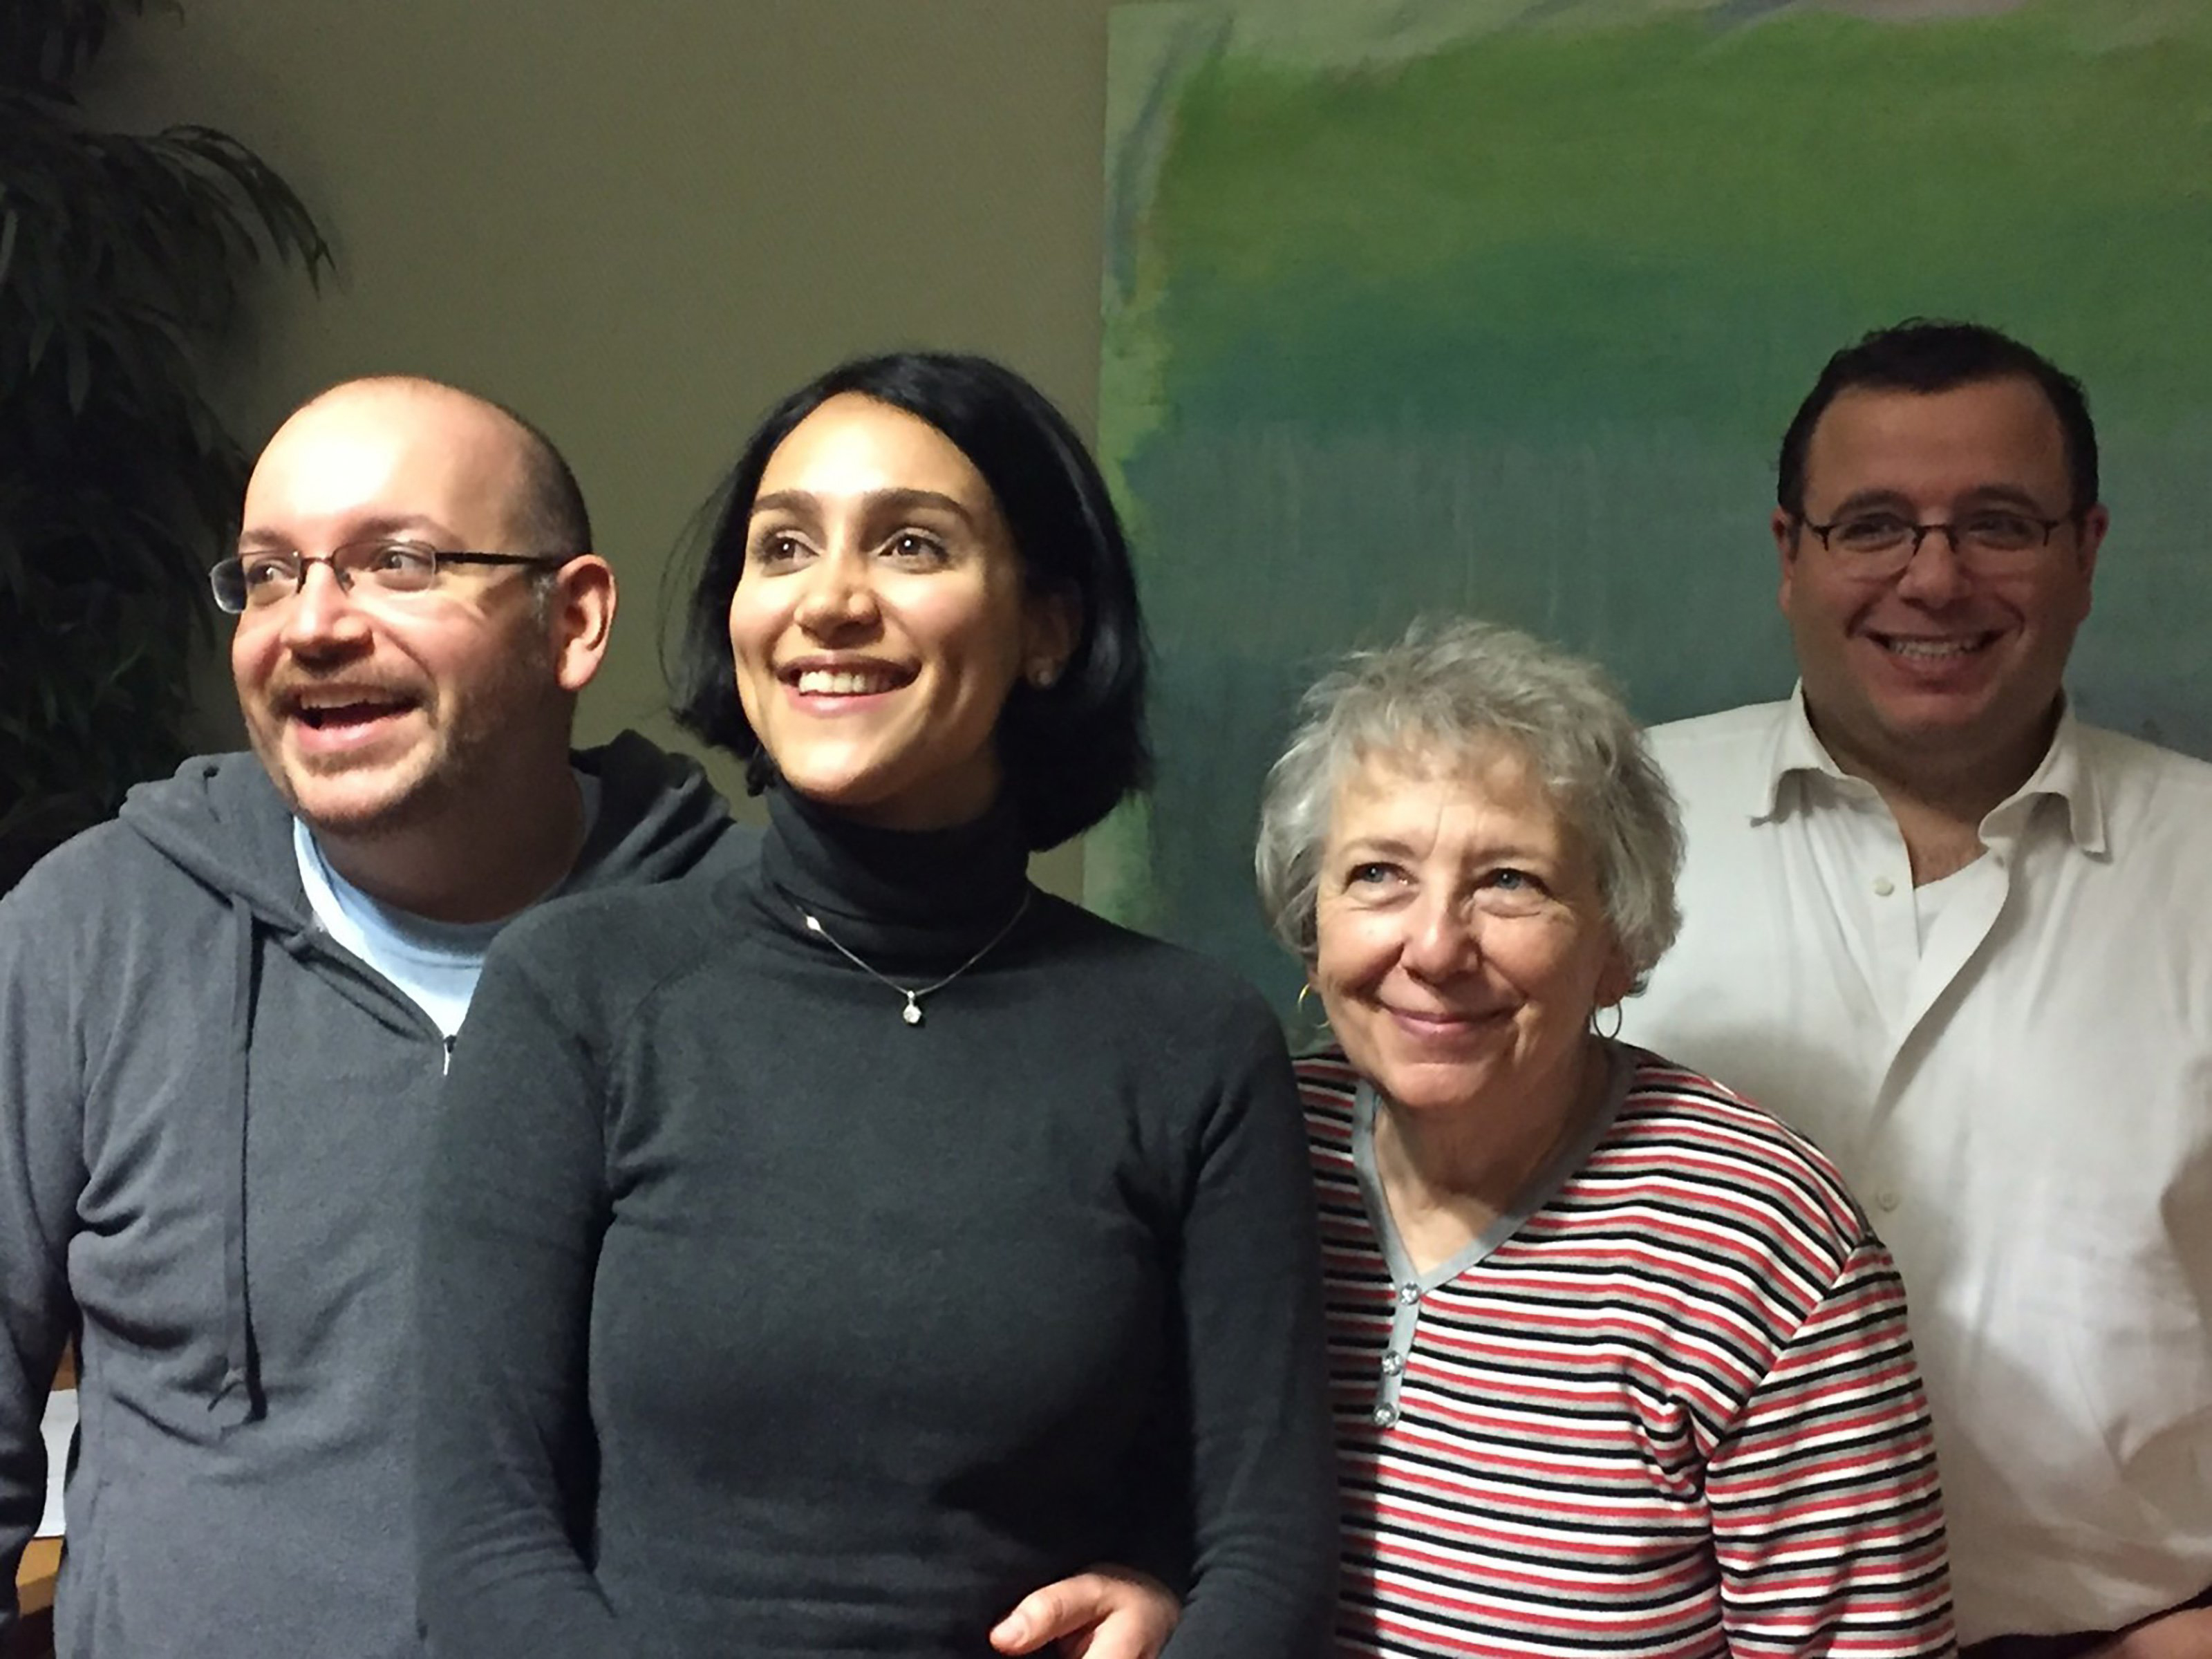 Washington Post journalist Jason Rezaian (left), freed after 18 months of incarceration in an Iranian prison, reunites with his wife Yeganeh Salehi, mother Mary Rezaian and brother Ali Rezaian, on Jan. 18, 2016.